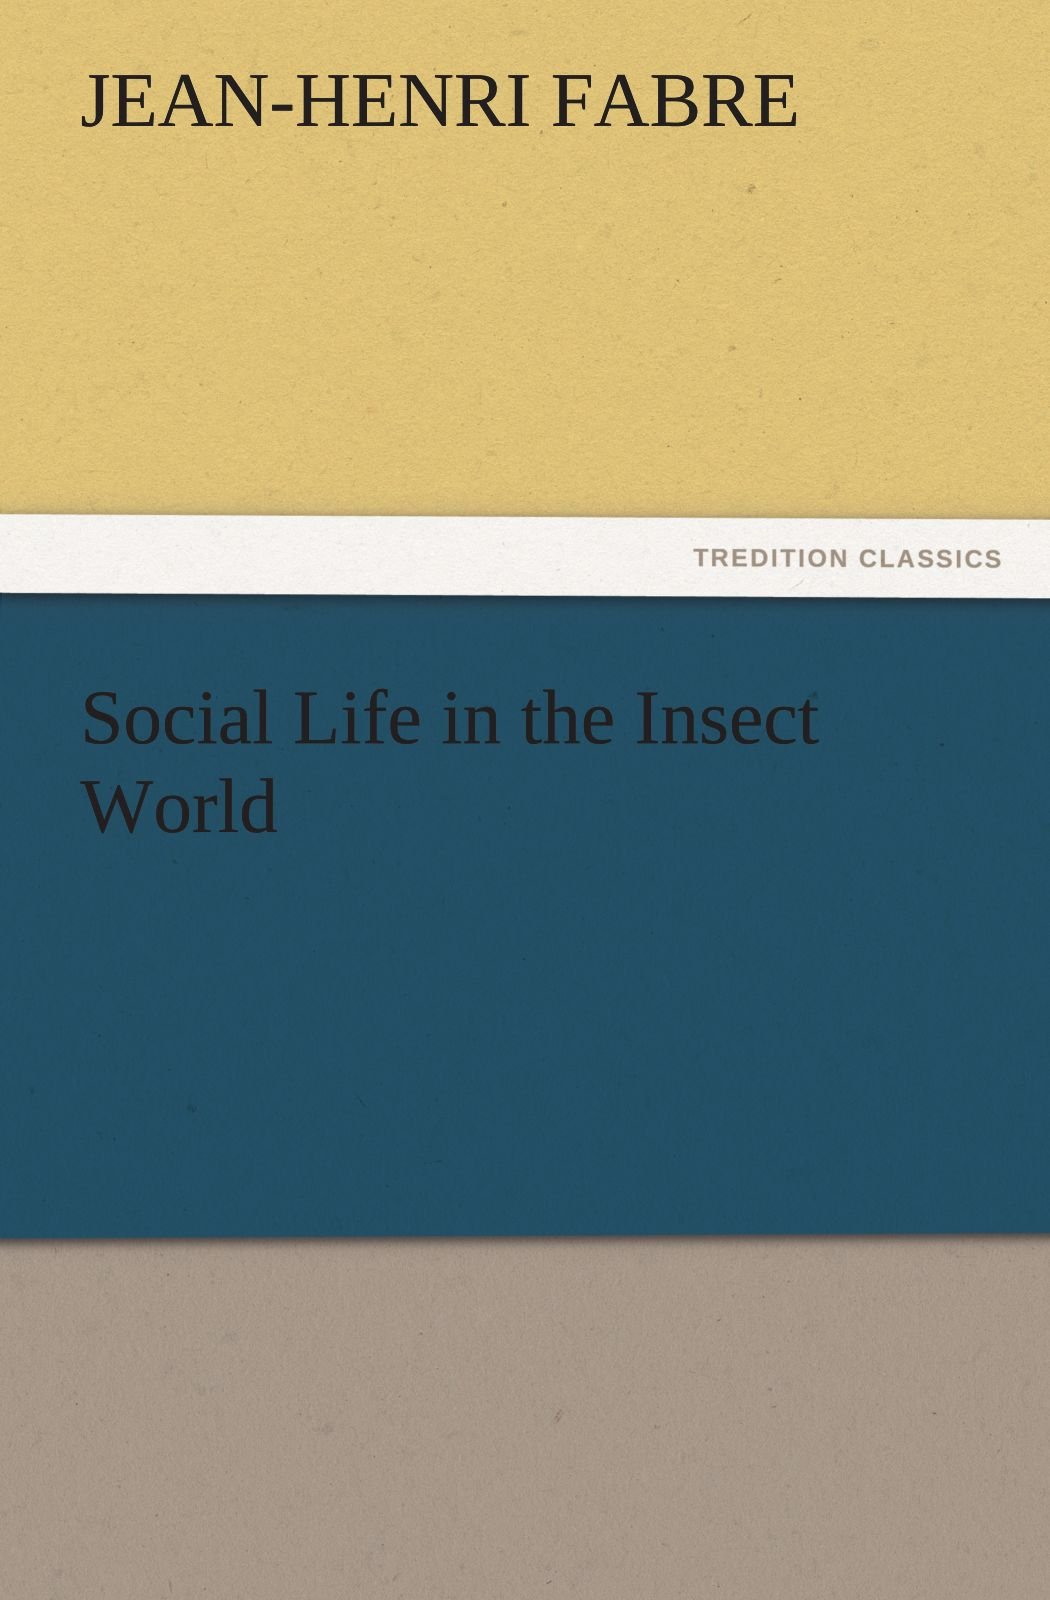 Social Life in the Insect World (TREDITION CLASSICS) pdf epub